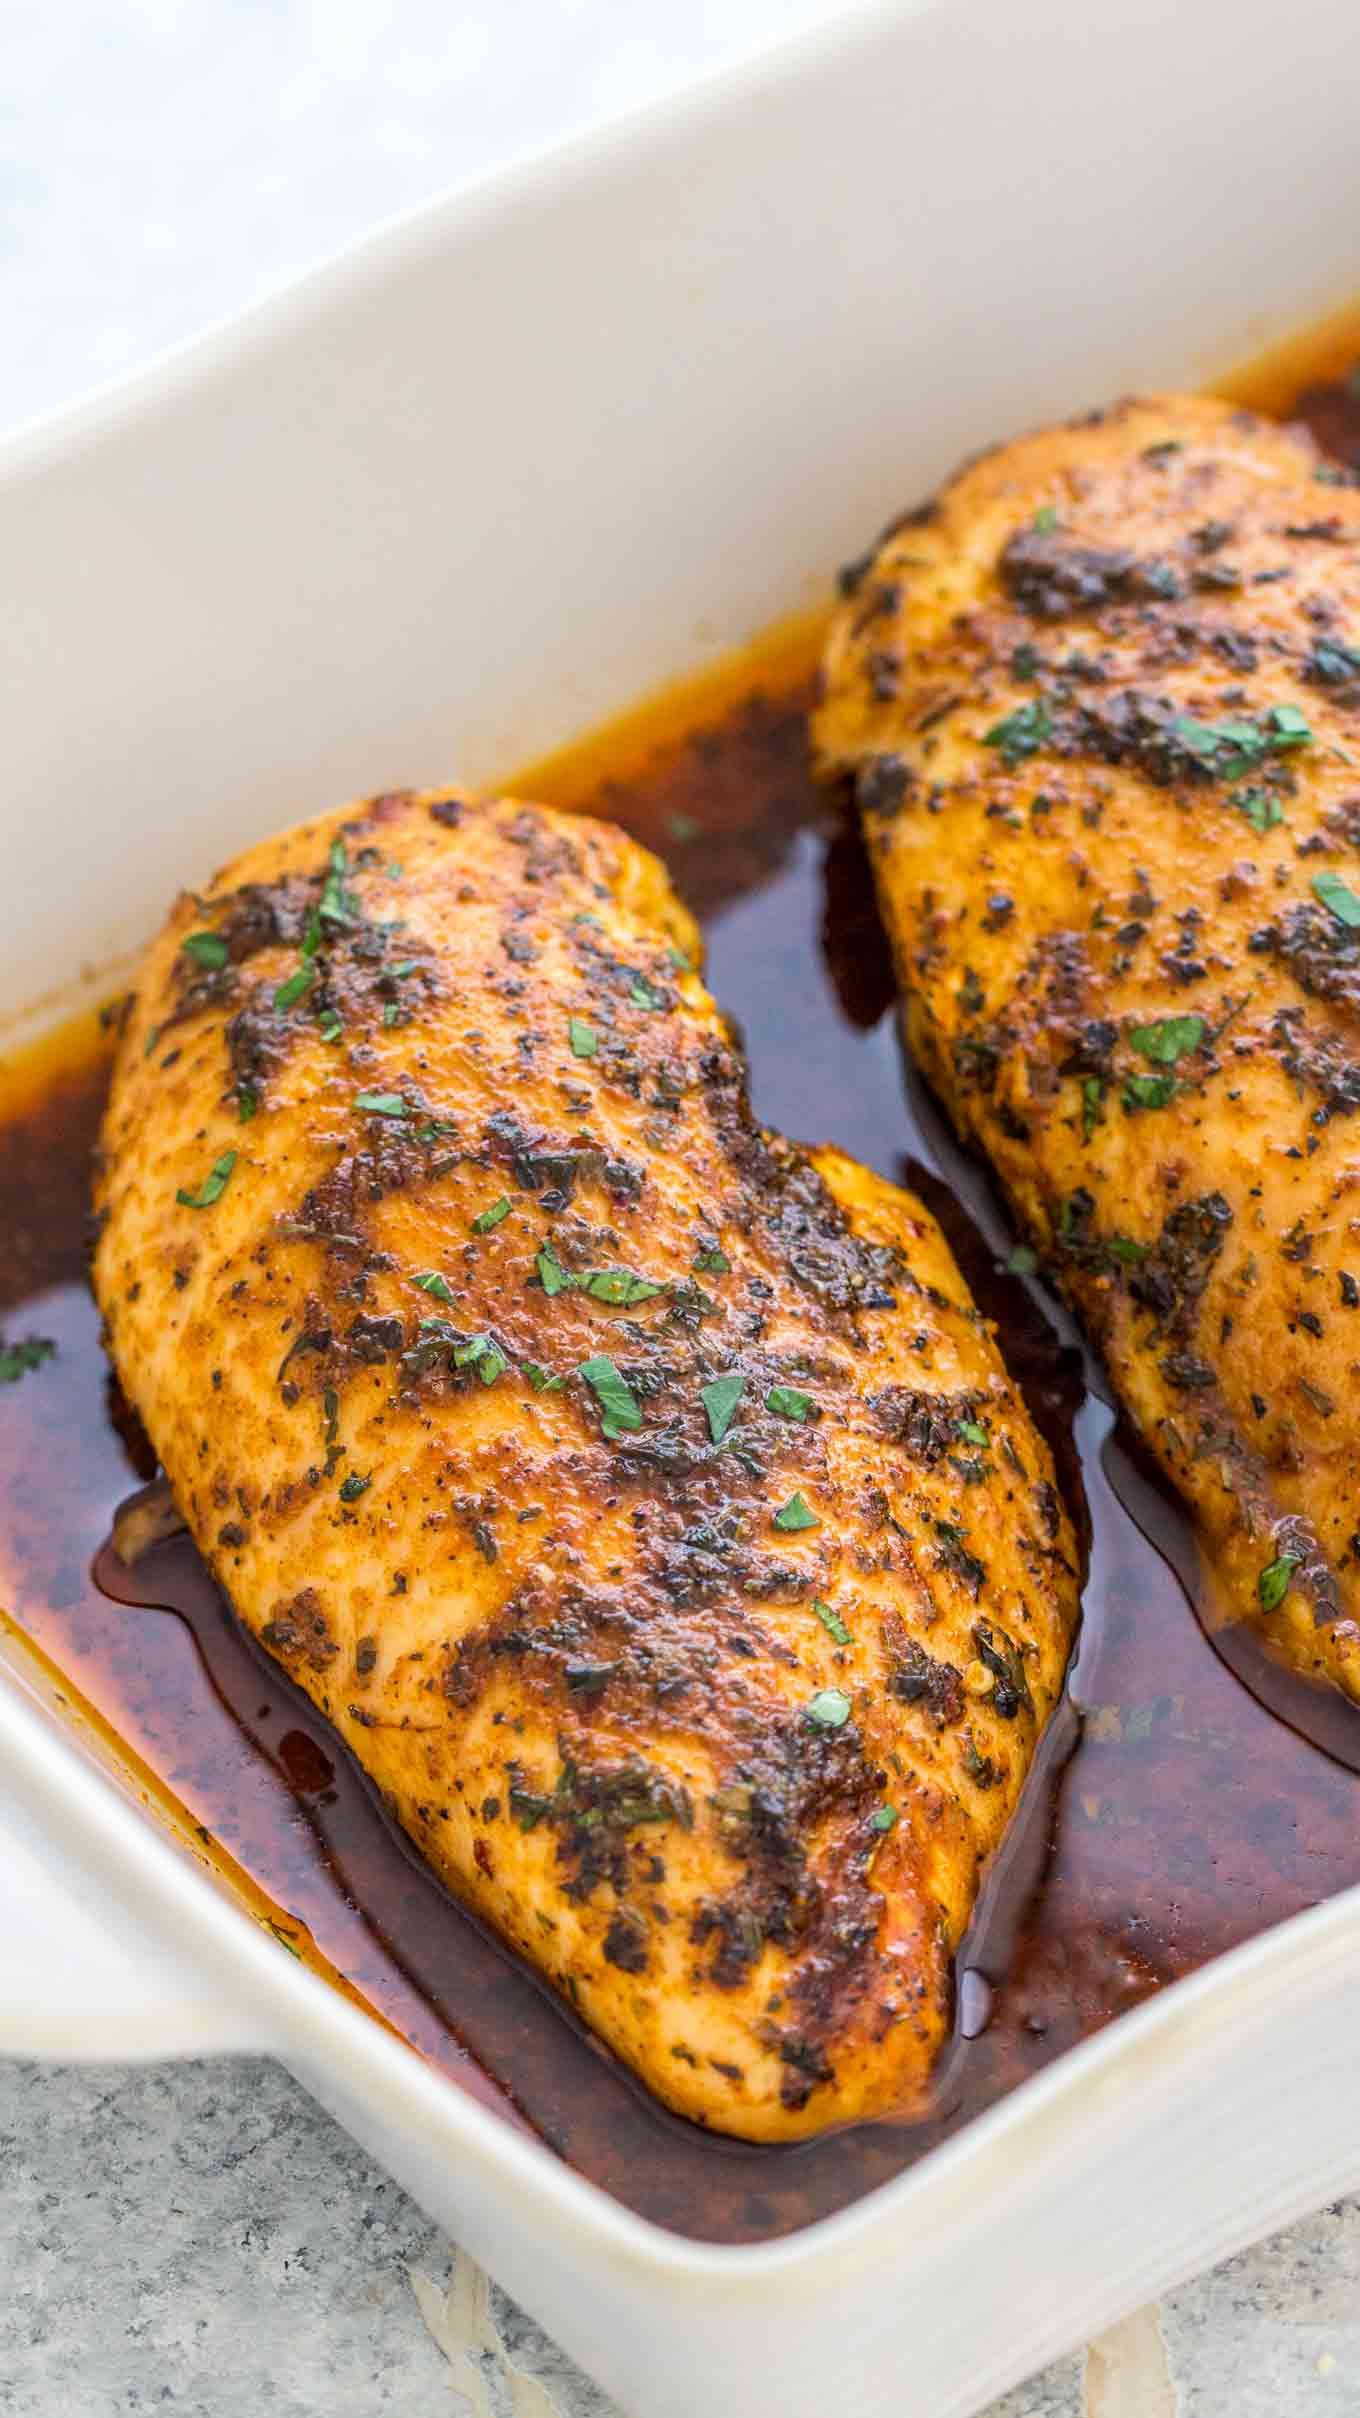 Oven Baked Chicken Breasts Recipe Juicy Flavorful Video Sweet And Savory Meals